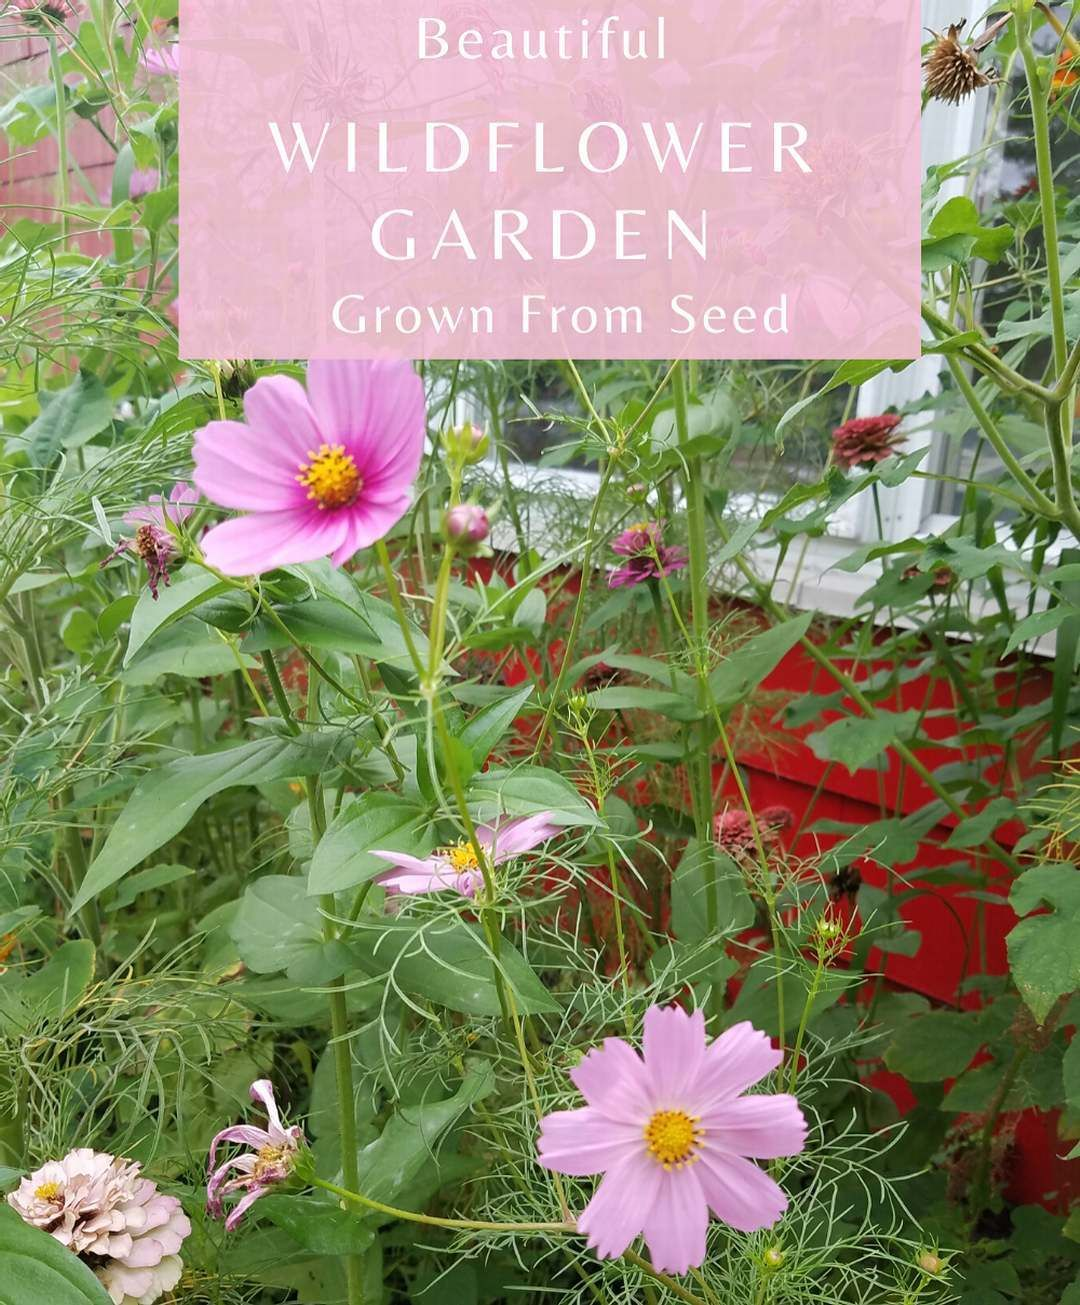 Wildflowers Were Grown In My Garden From Seed Two Summers Ago They Grew Over 7ft Tall Best I Have Ever Had In 2020 Wildflower Garden Flower Seeds Cosmos Flowers